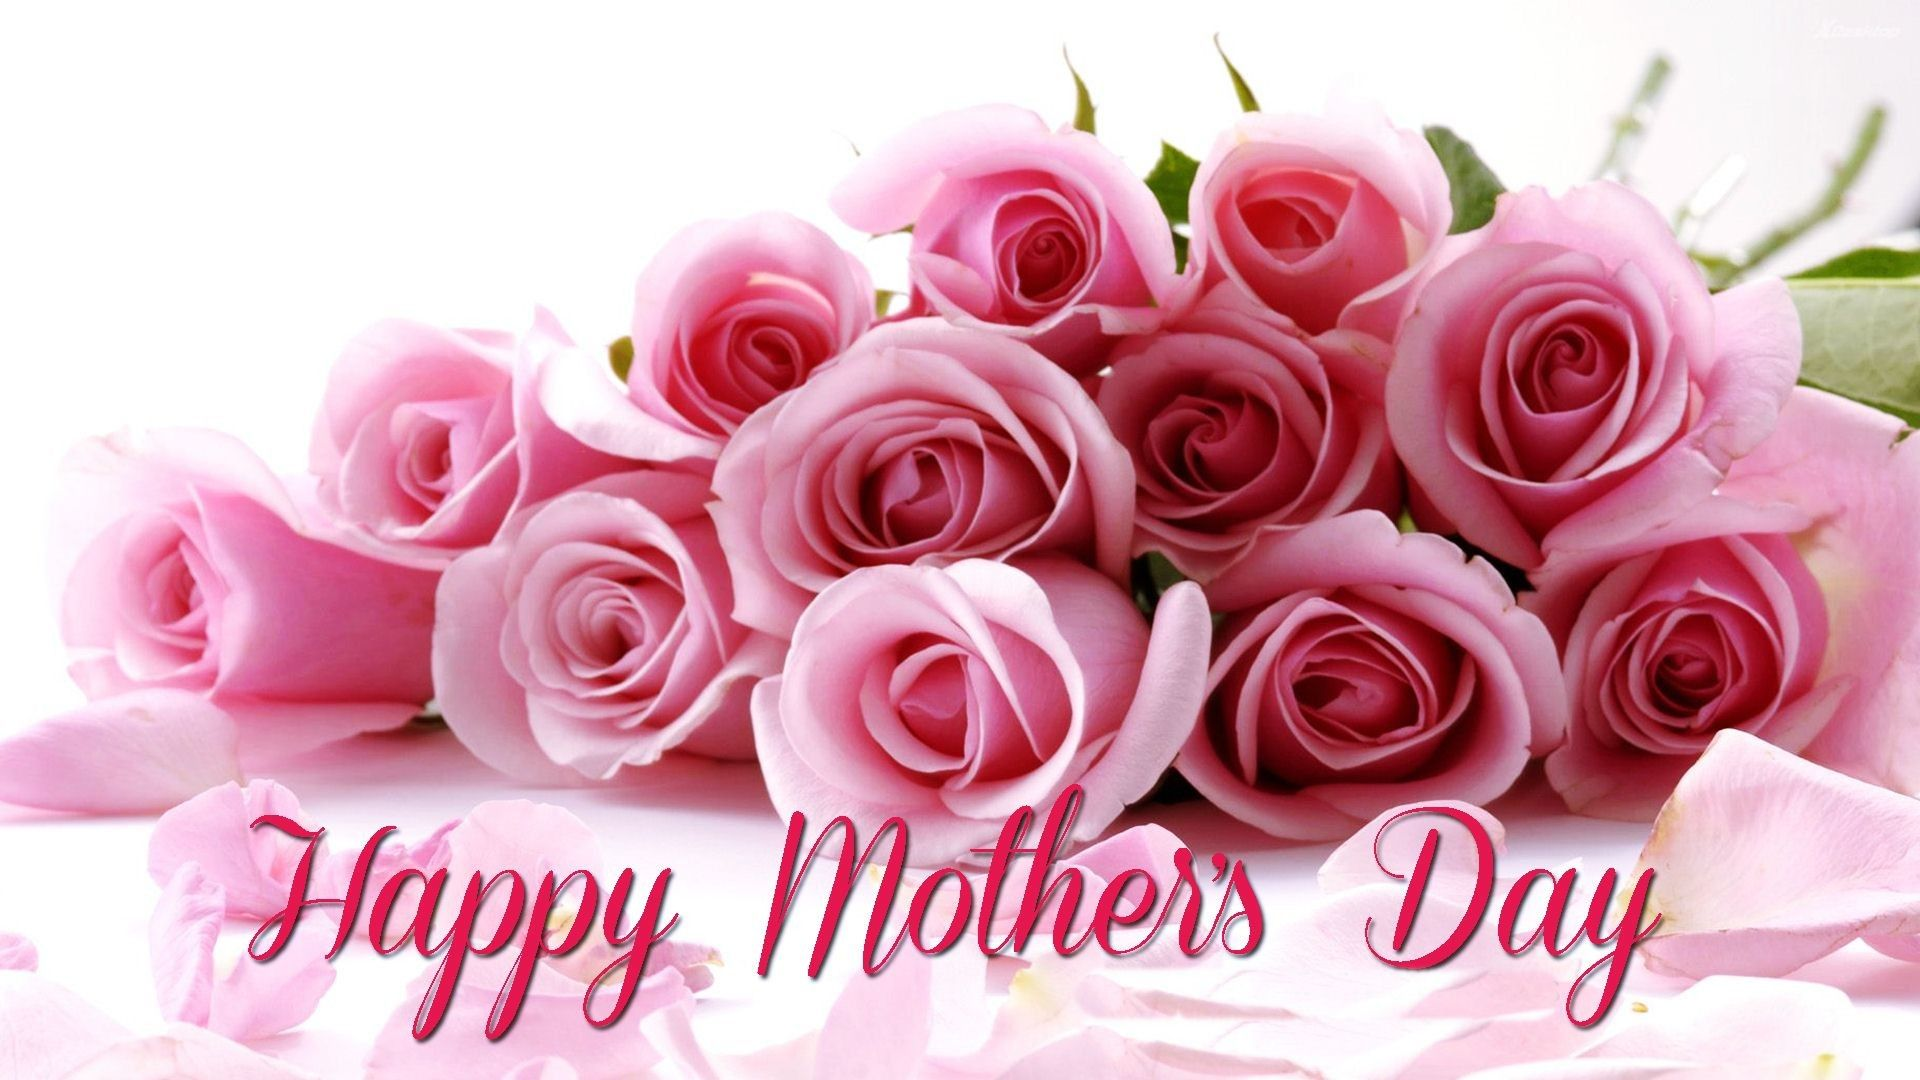 1920x1080 Mothers Day Wallpaper Images (54+ images)